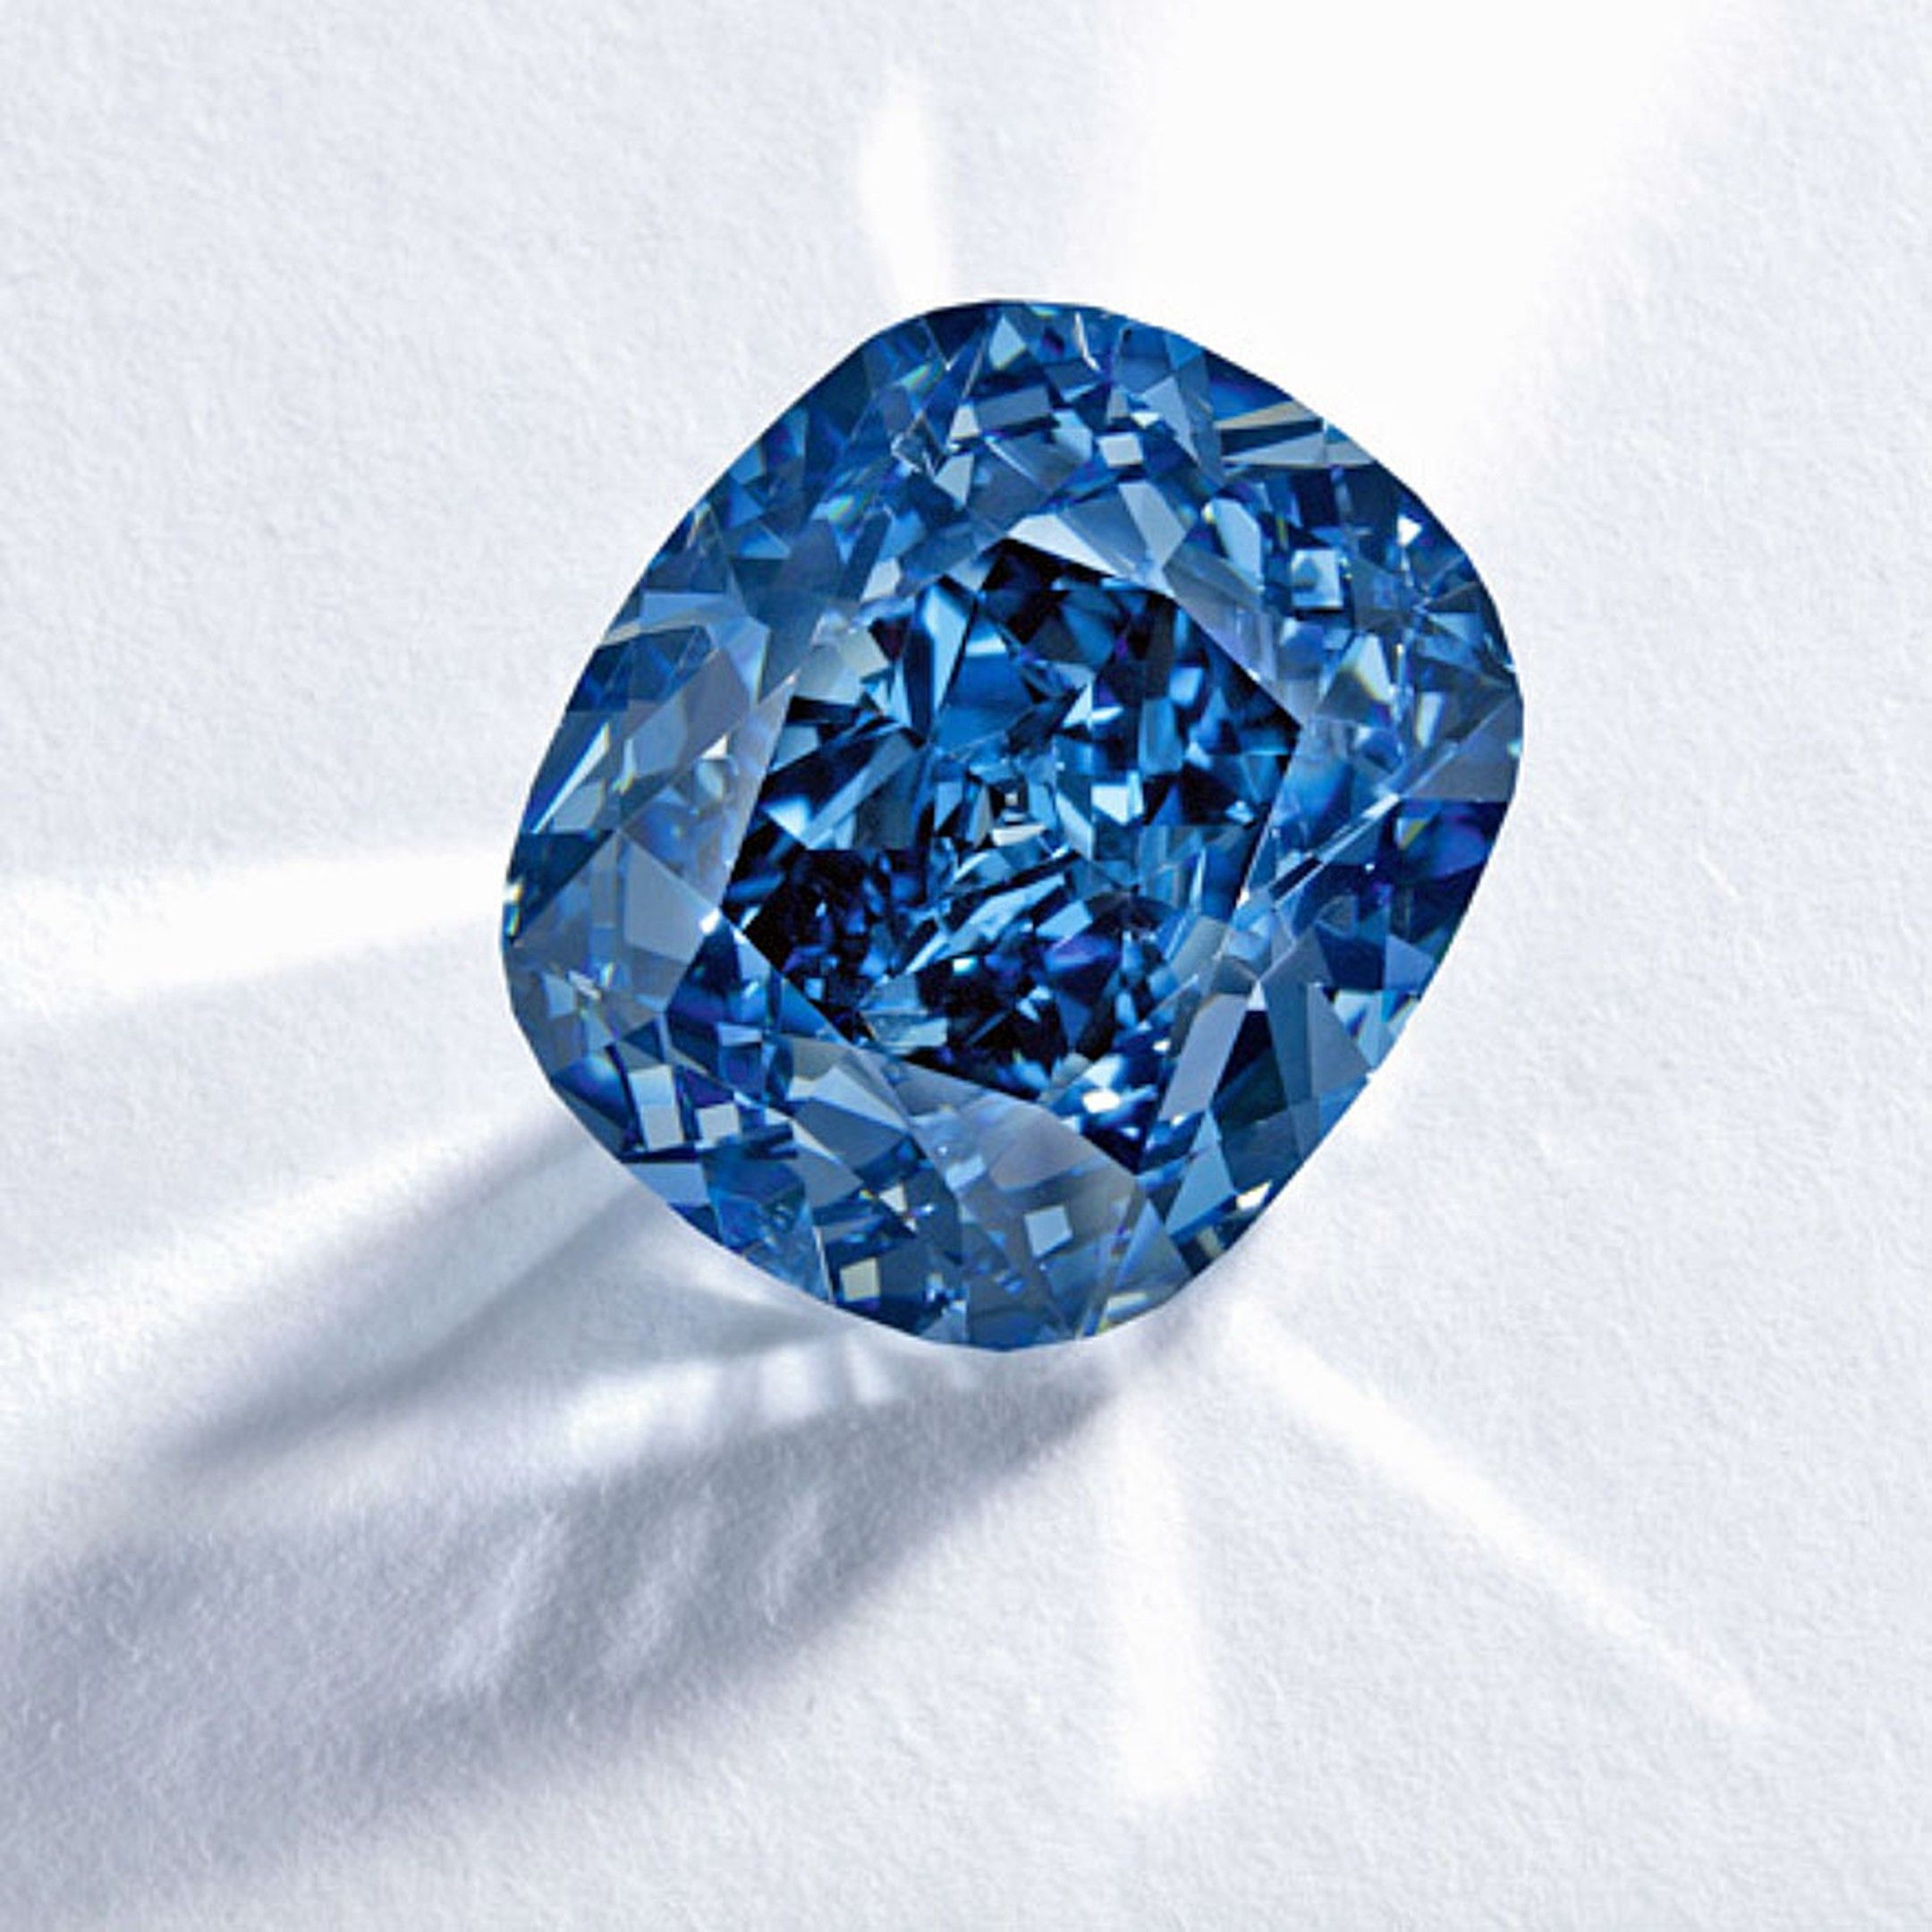 design the by art history mustafa mystery presentation of sapphire gemstone and